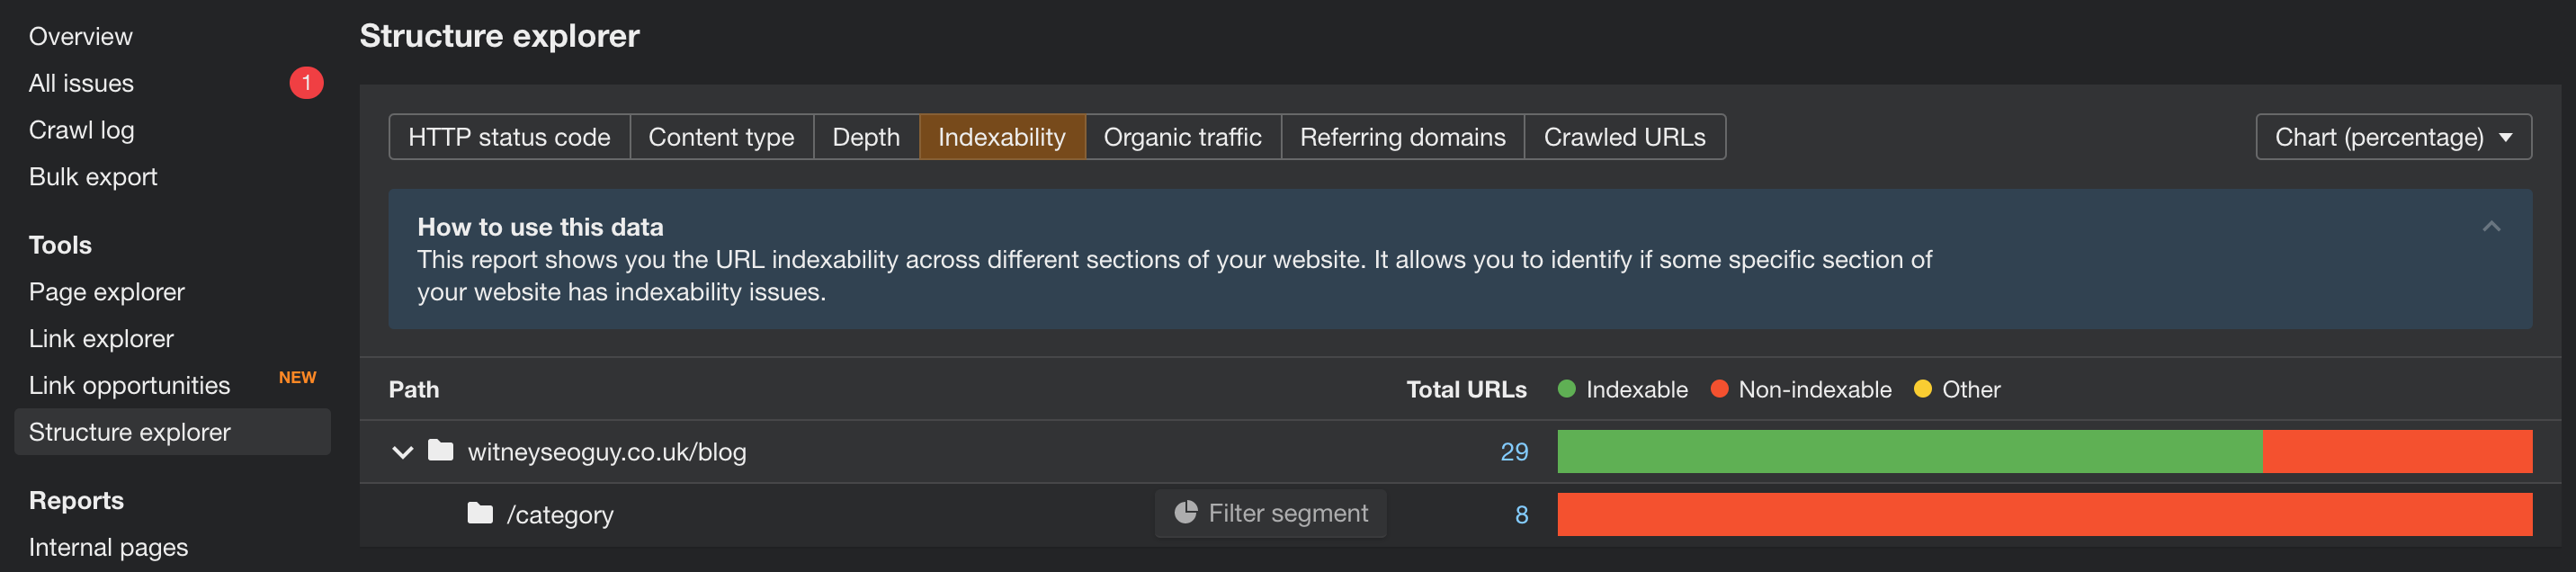 structure explorer tool in ahrefs webmaster tools